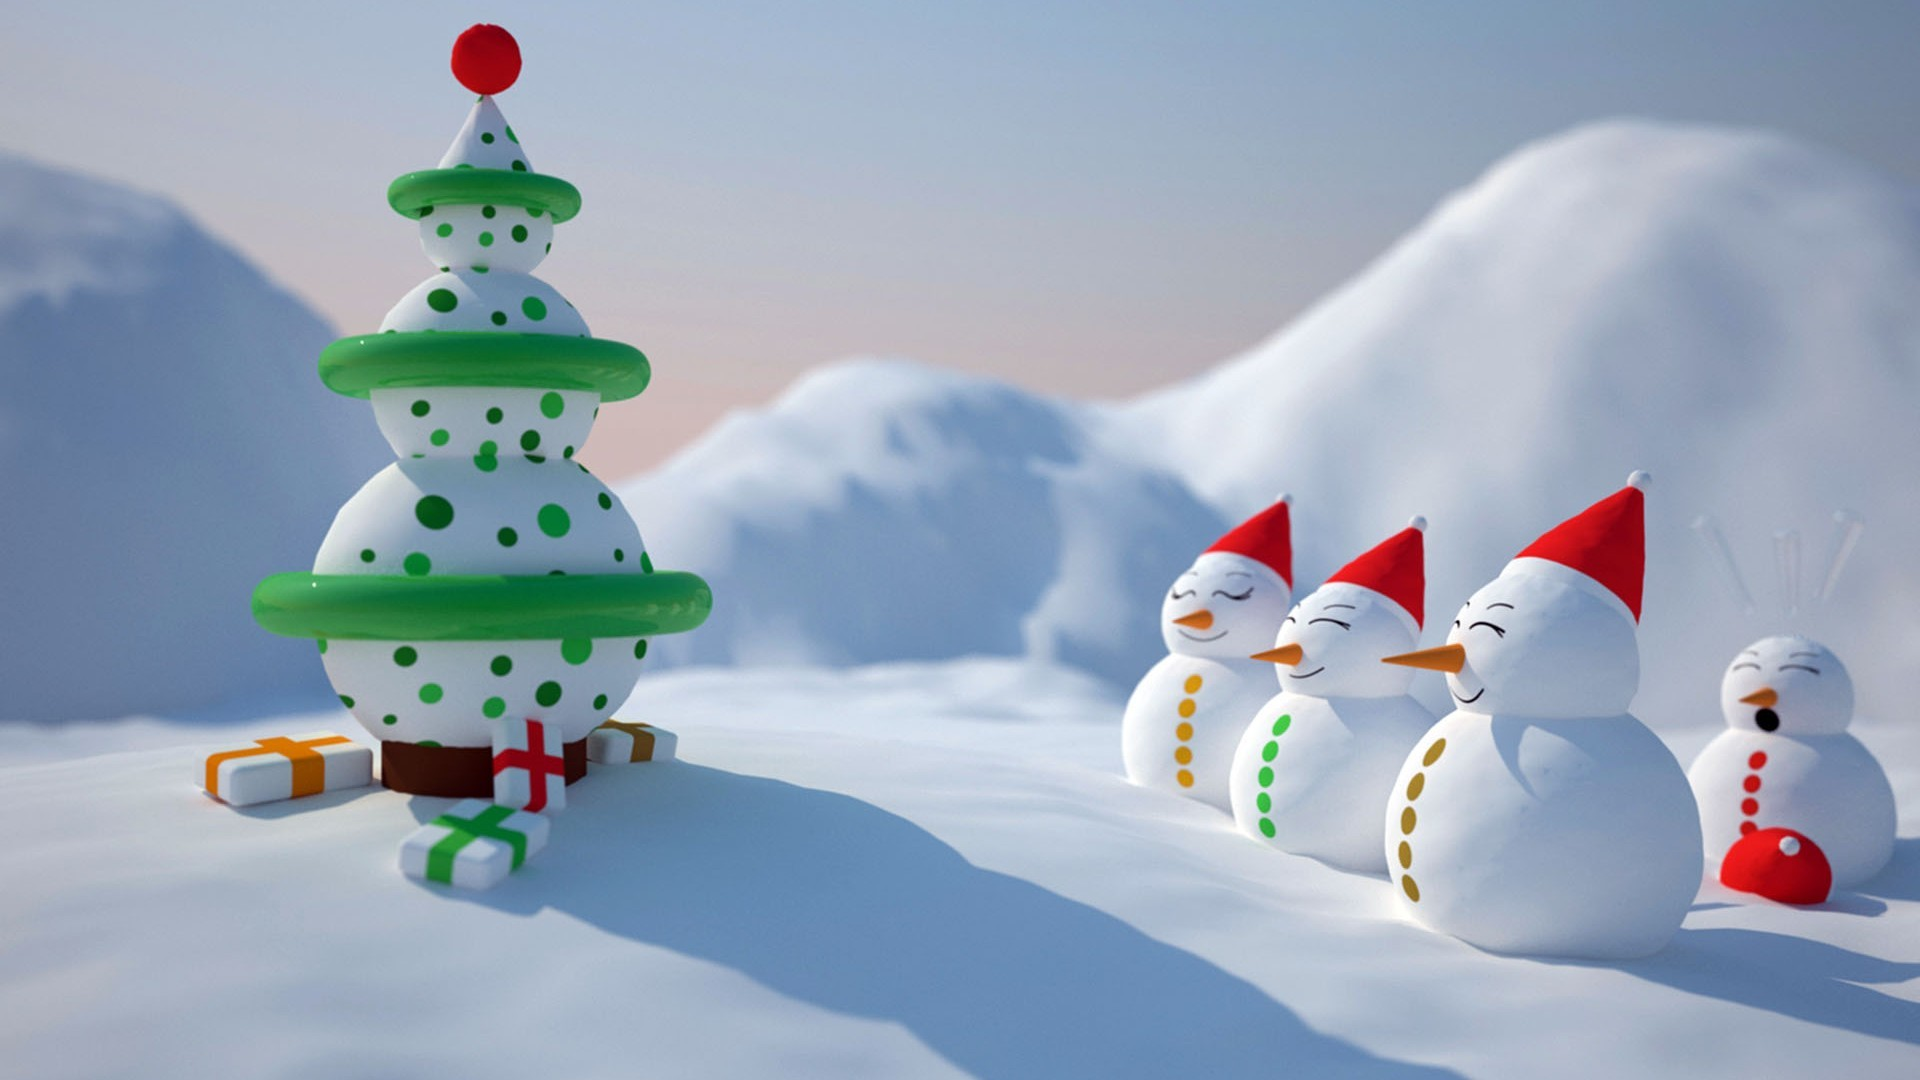 1920x1080 High definition wallpaper download Snowman Christmas Wallpaper HD Wallpaper